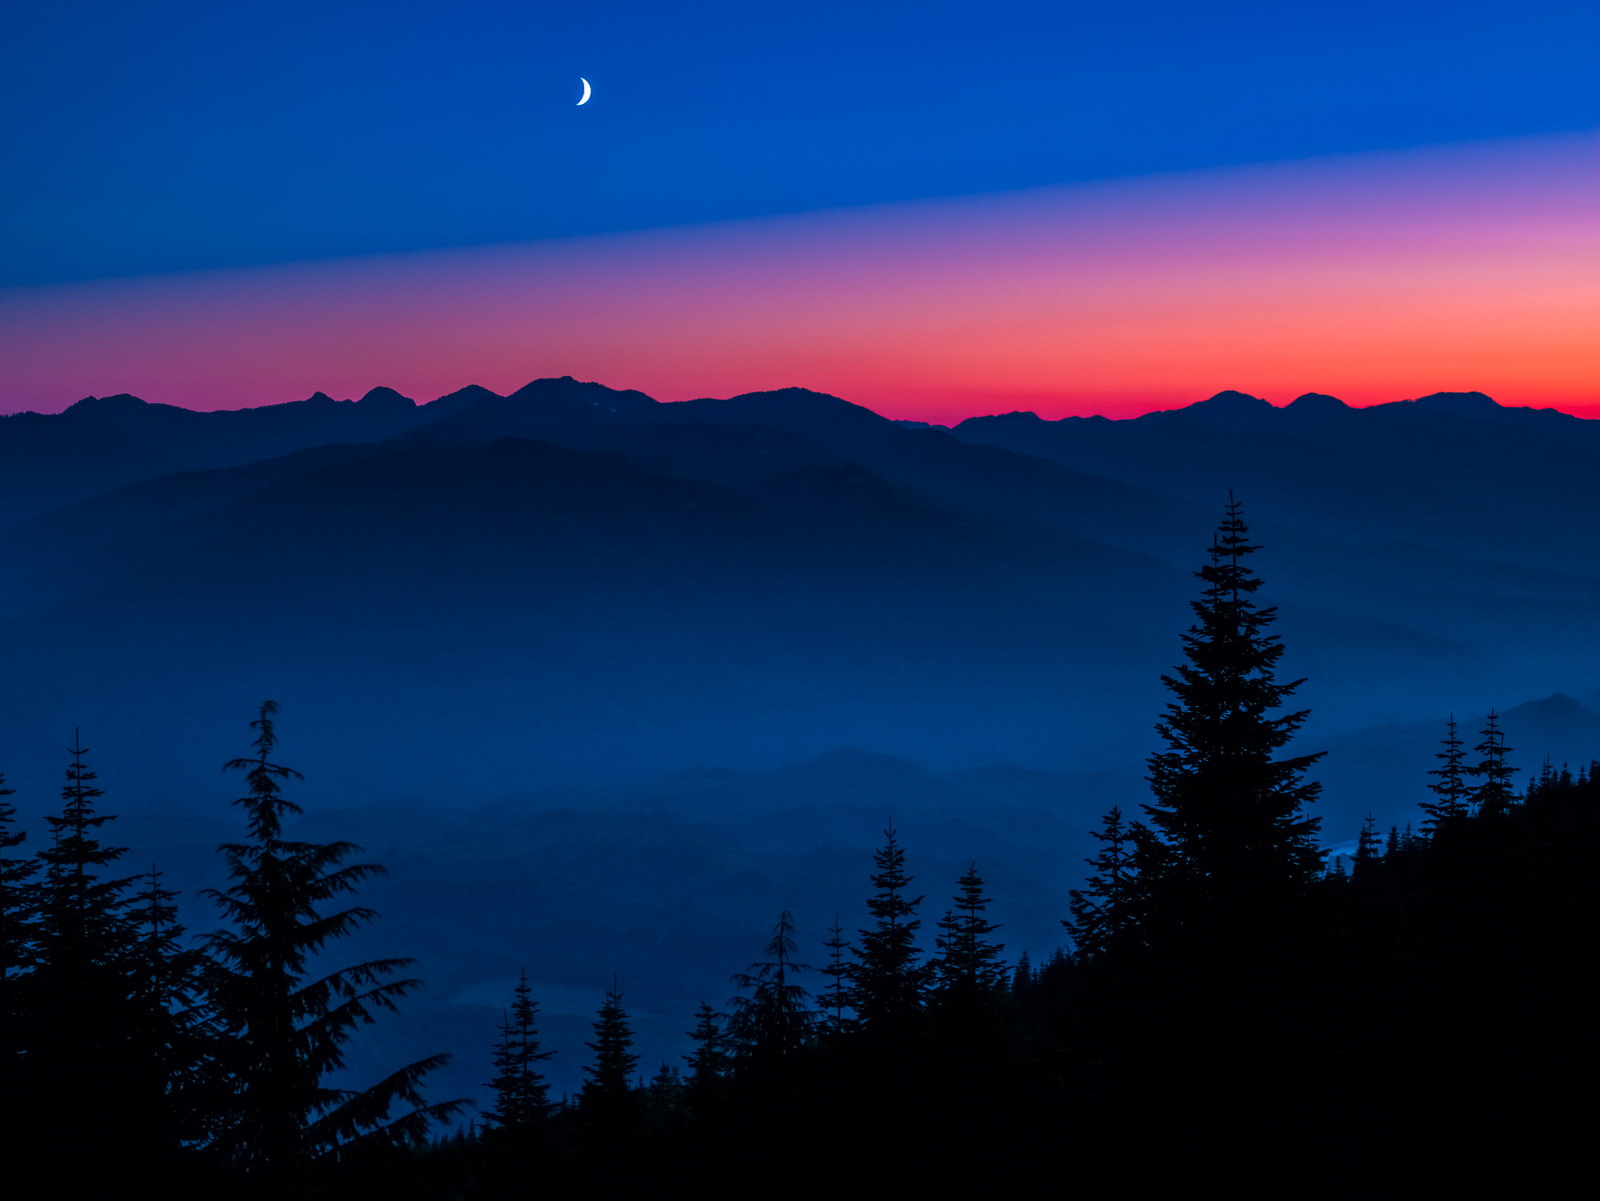 Crescent Moon-2,Moon,Sunset,Trees,Washington,mountains,Mount Baker-Snoqualmie National Forest, Night,Crescent,Shine,Bright, photo